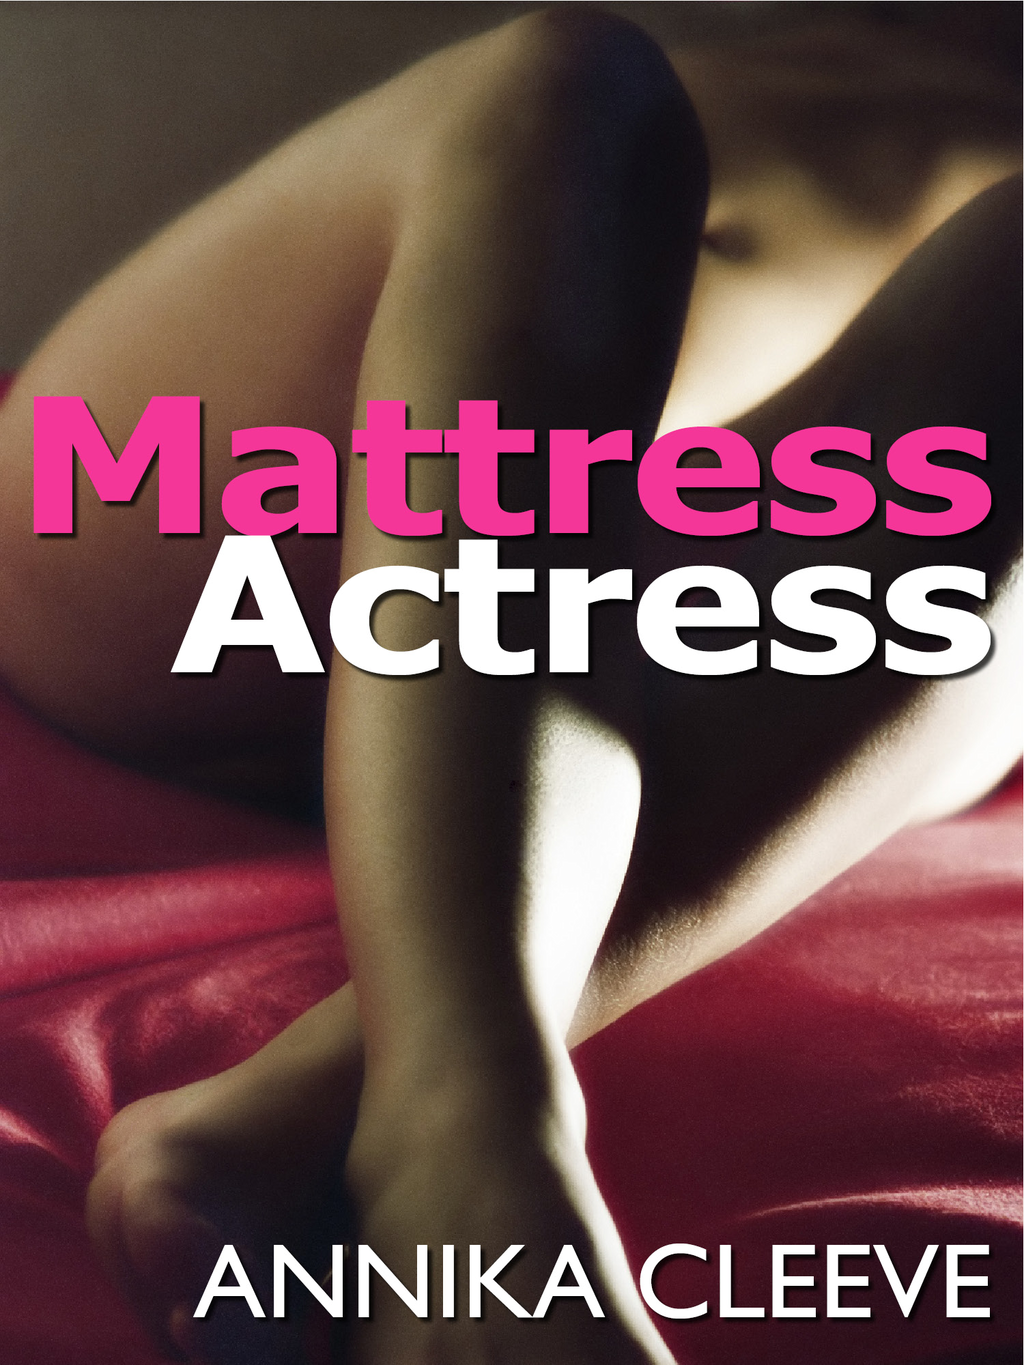 Mattress Actress By: Annika Cleeve